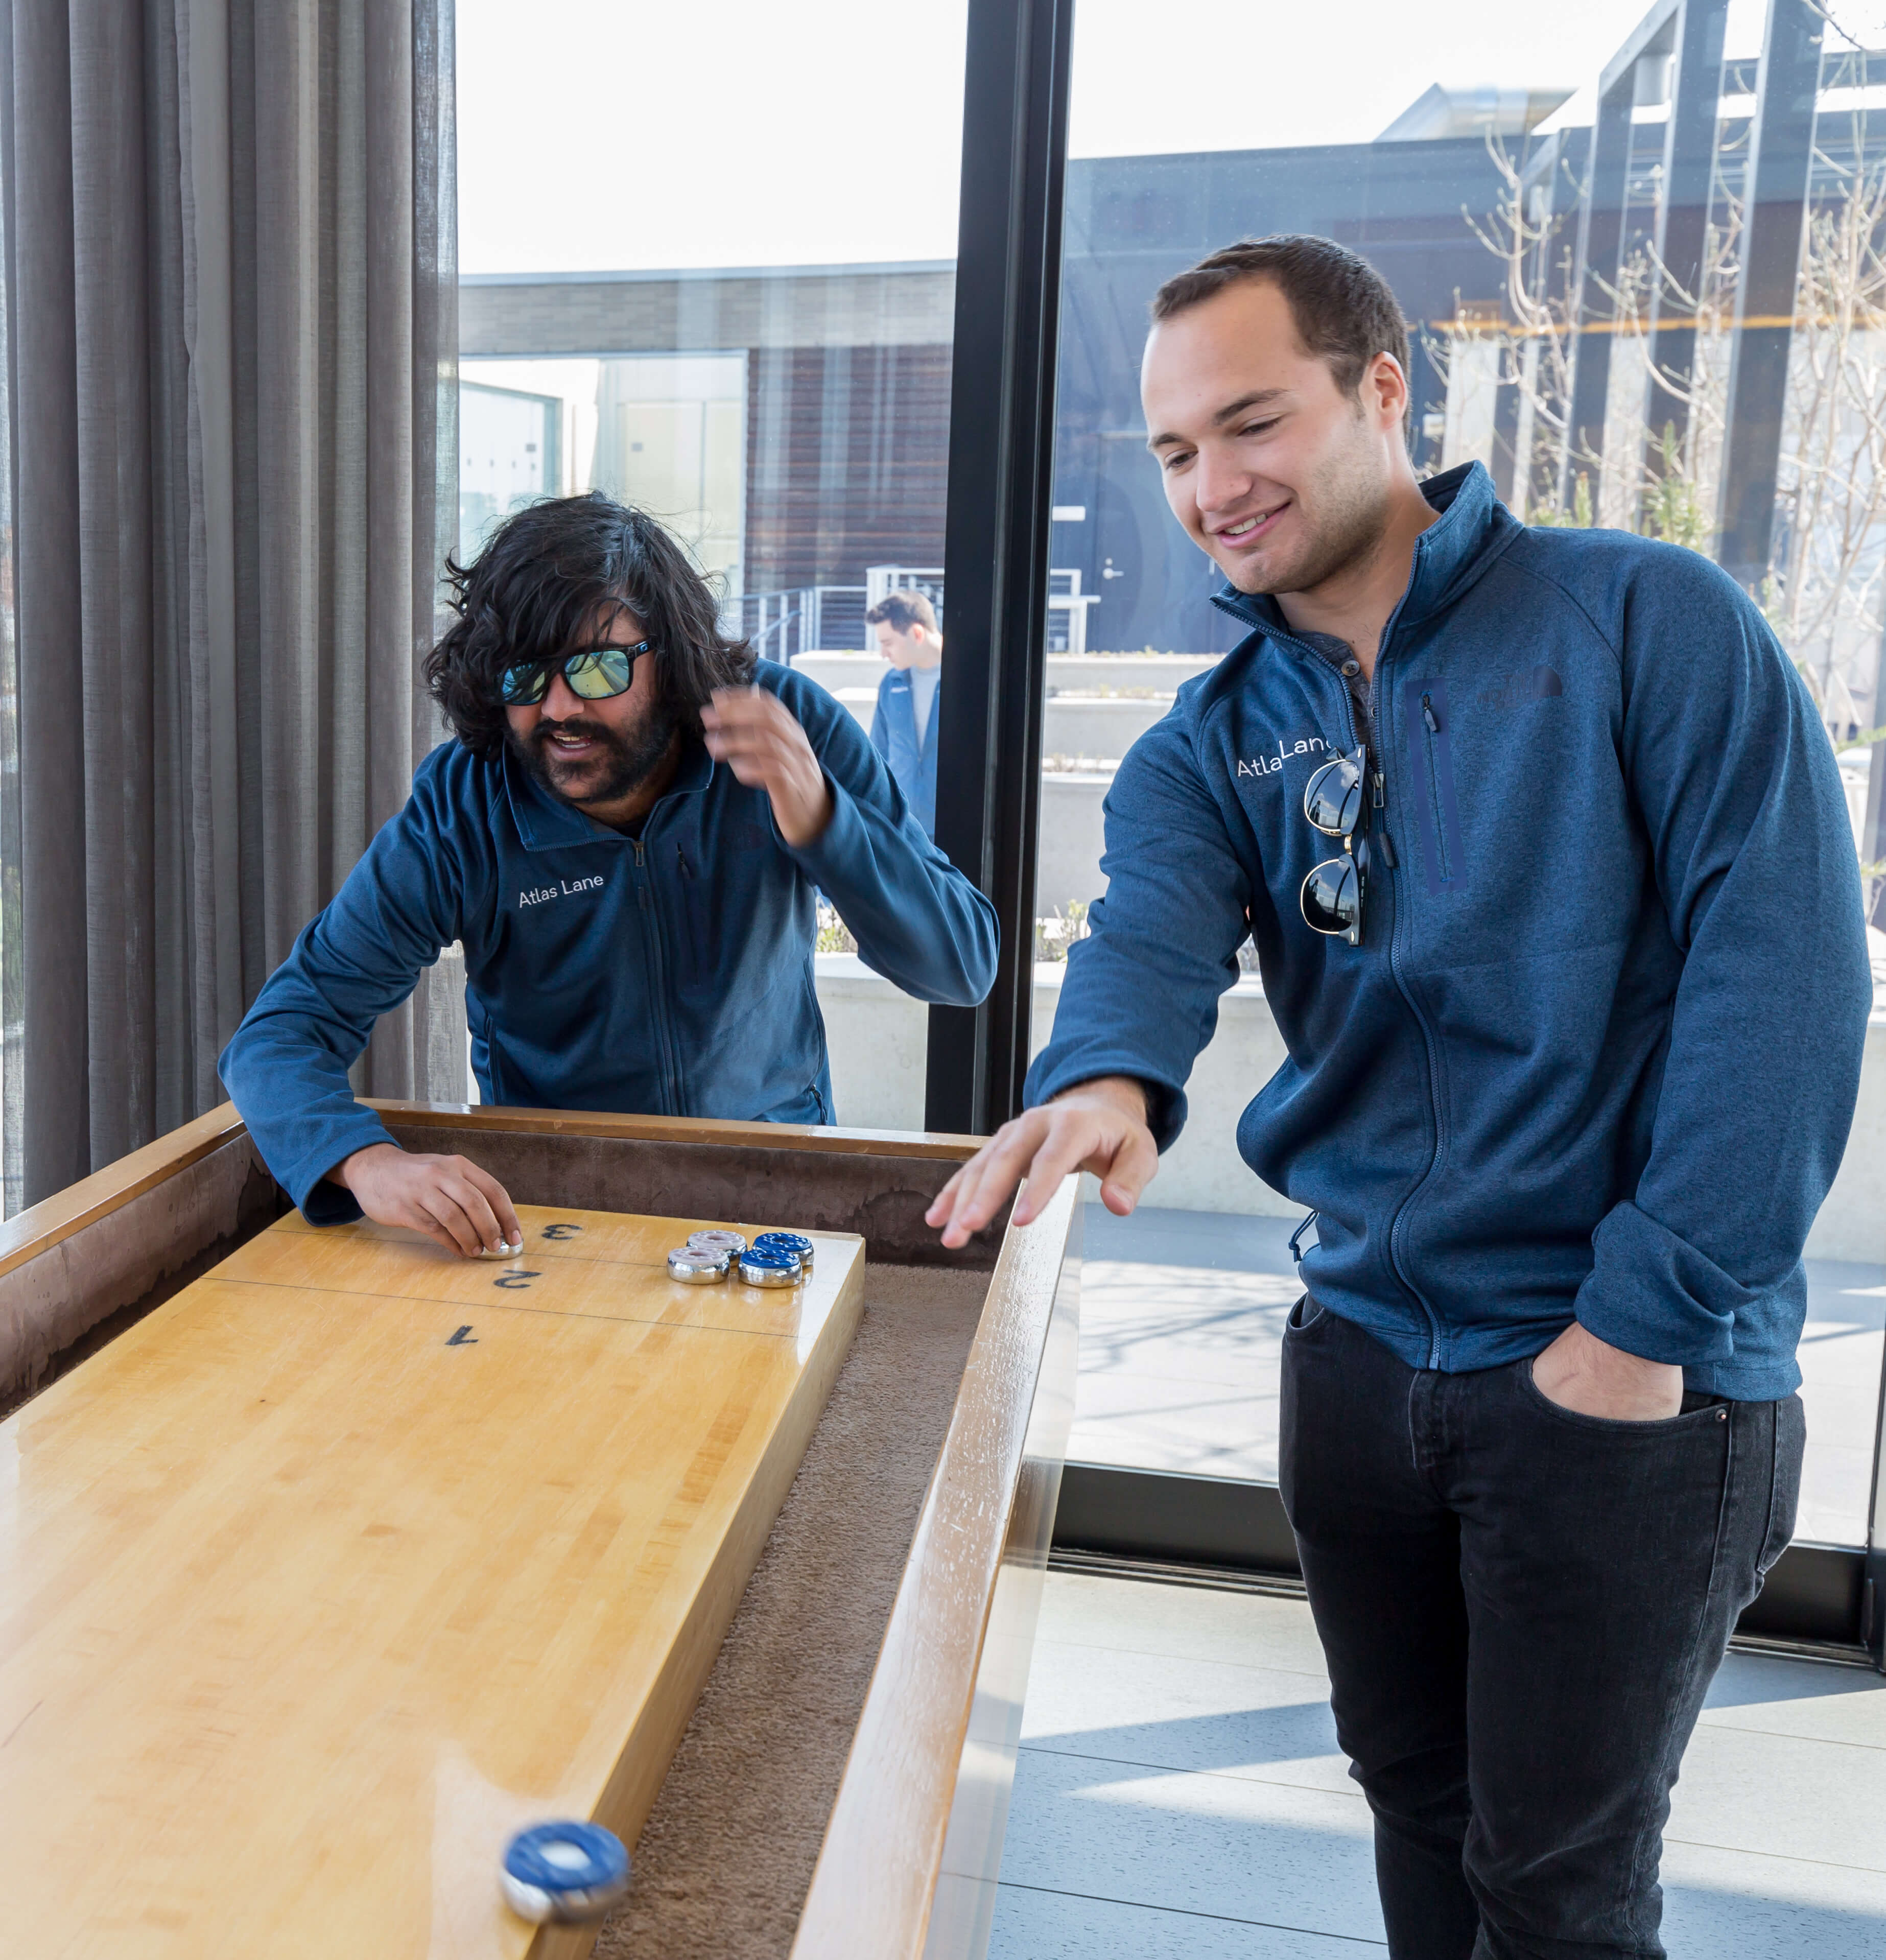 Two Atlas Lane employees playing shuffleboard together.